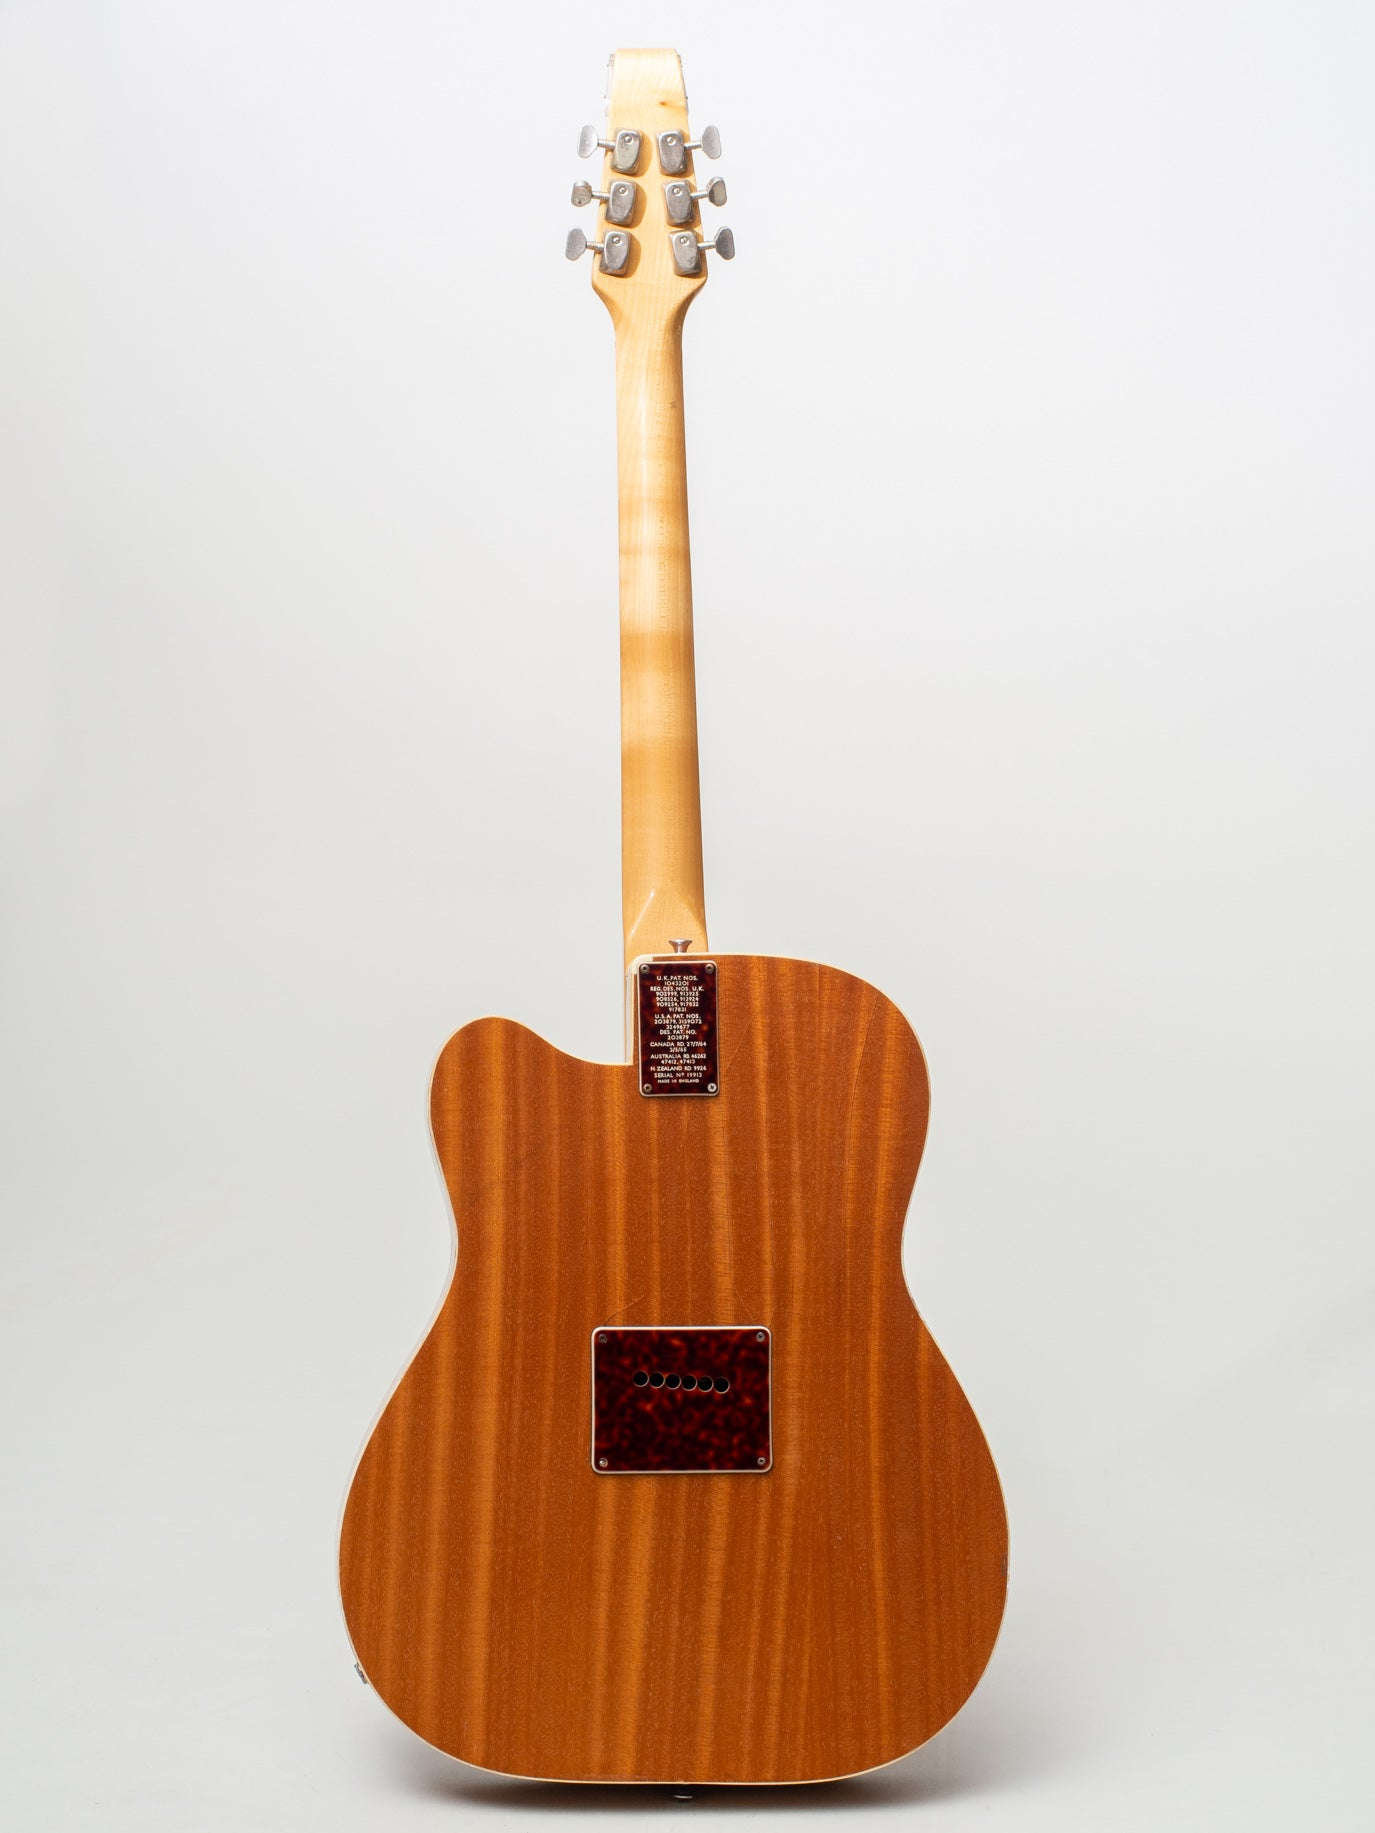 1965 Baldwin Virginian